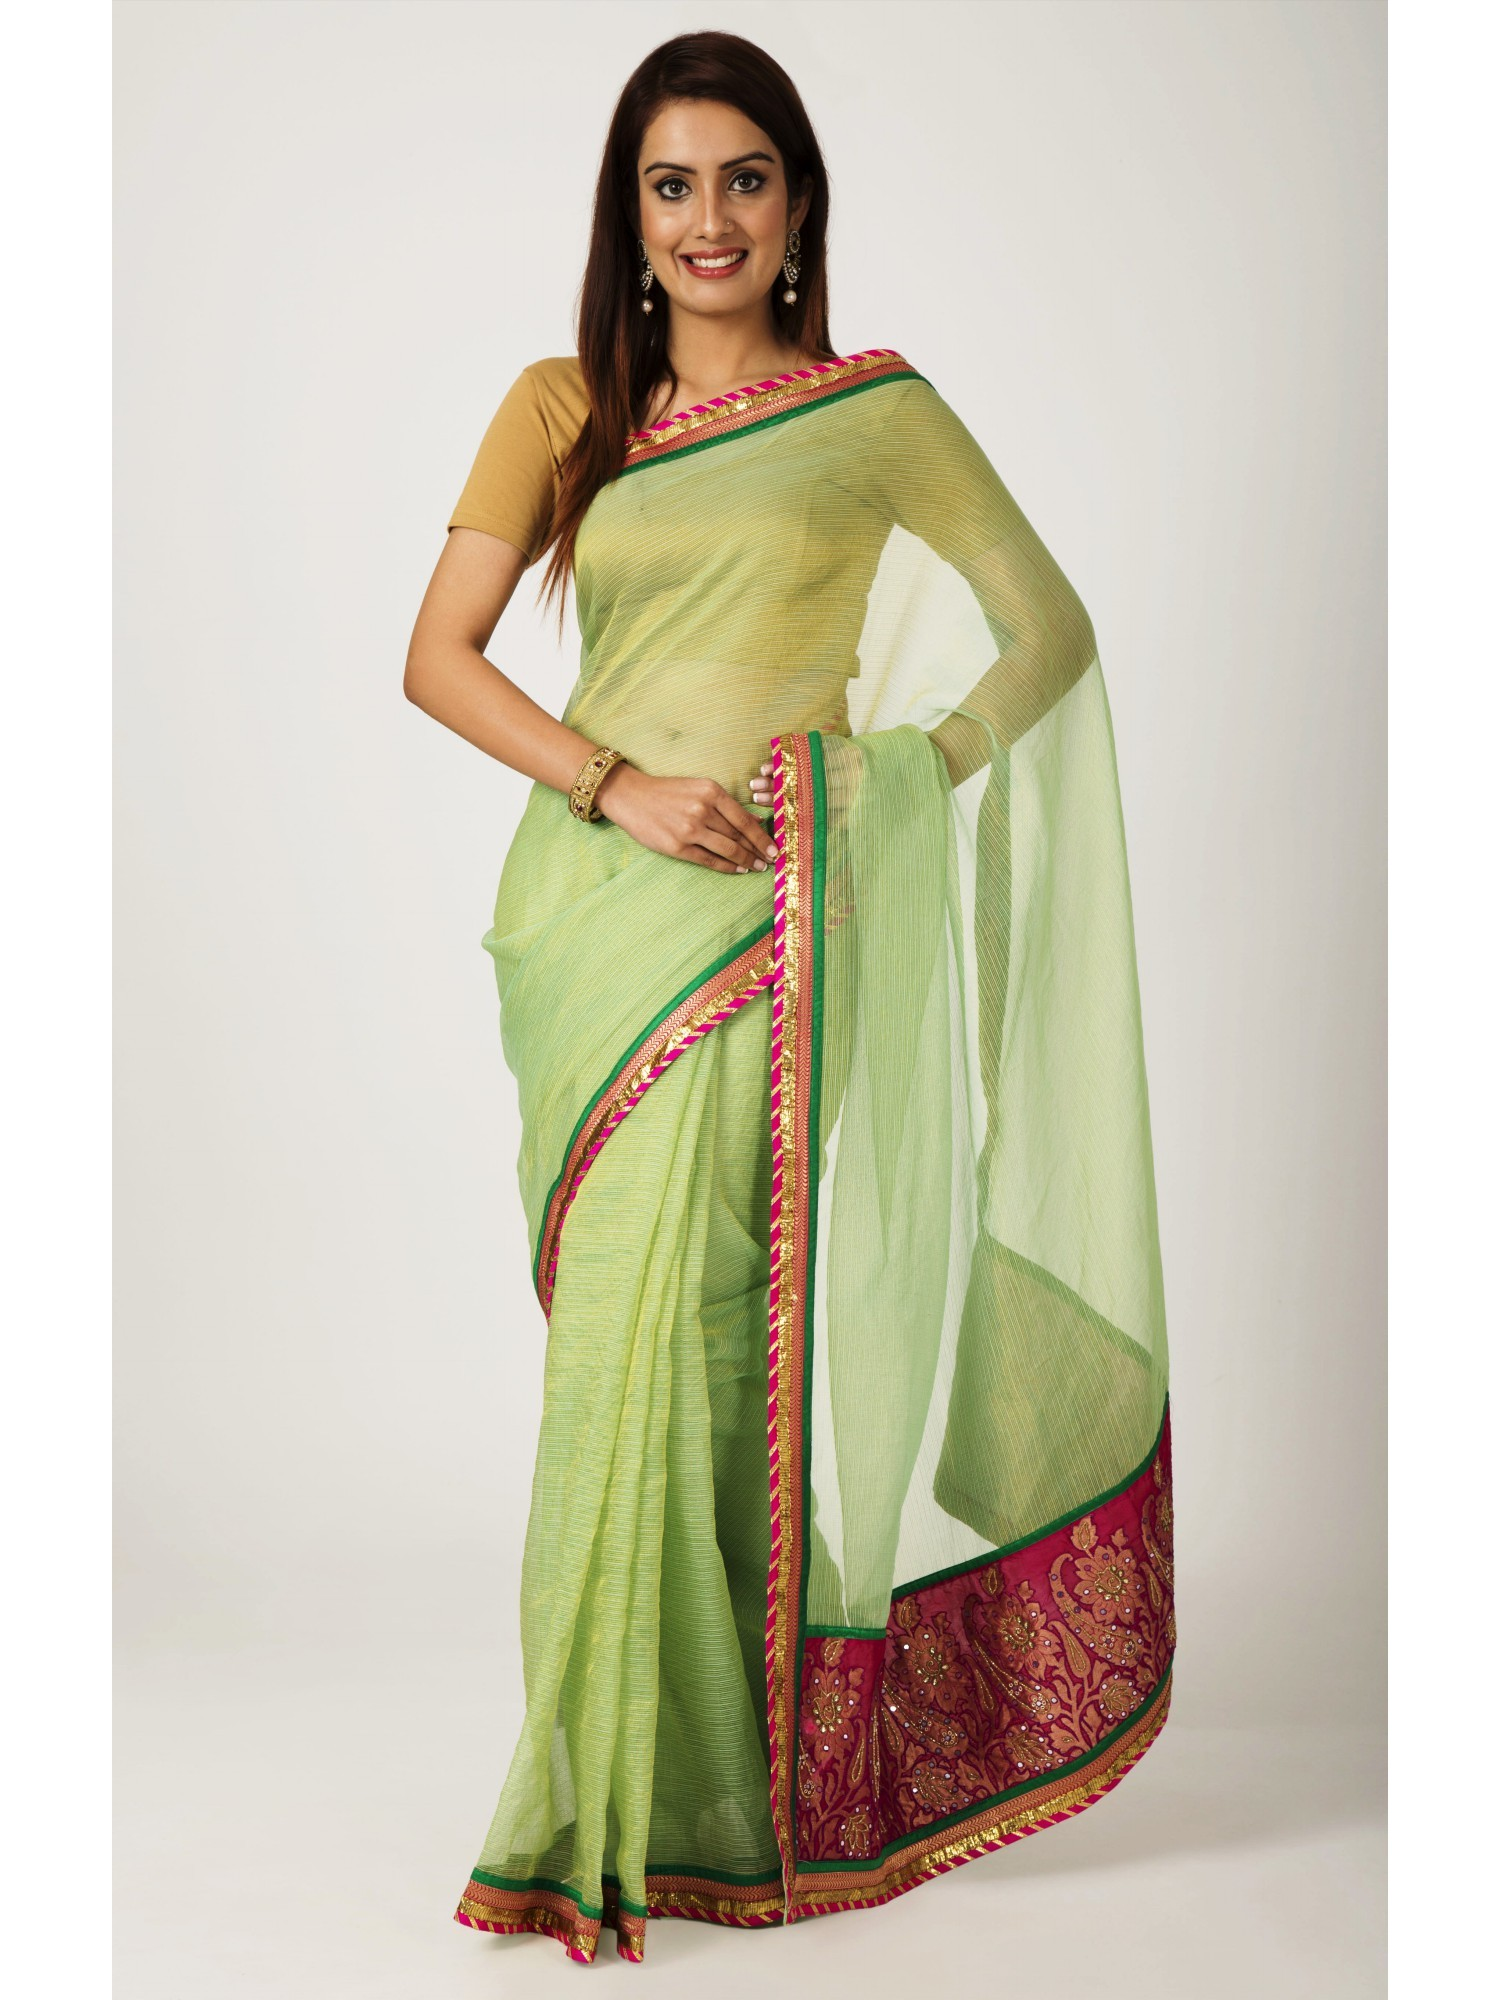 Ranas rama green zari kota tissu cutdana mirror work saree for Mirror work saree